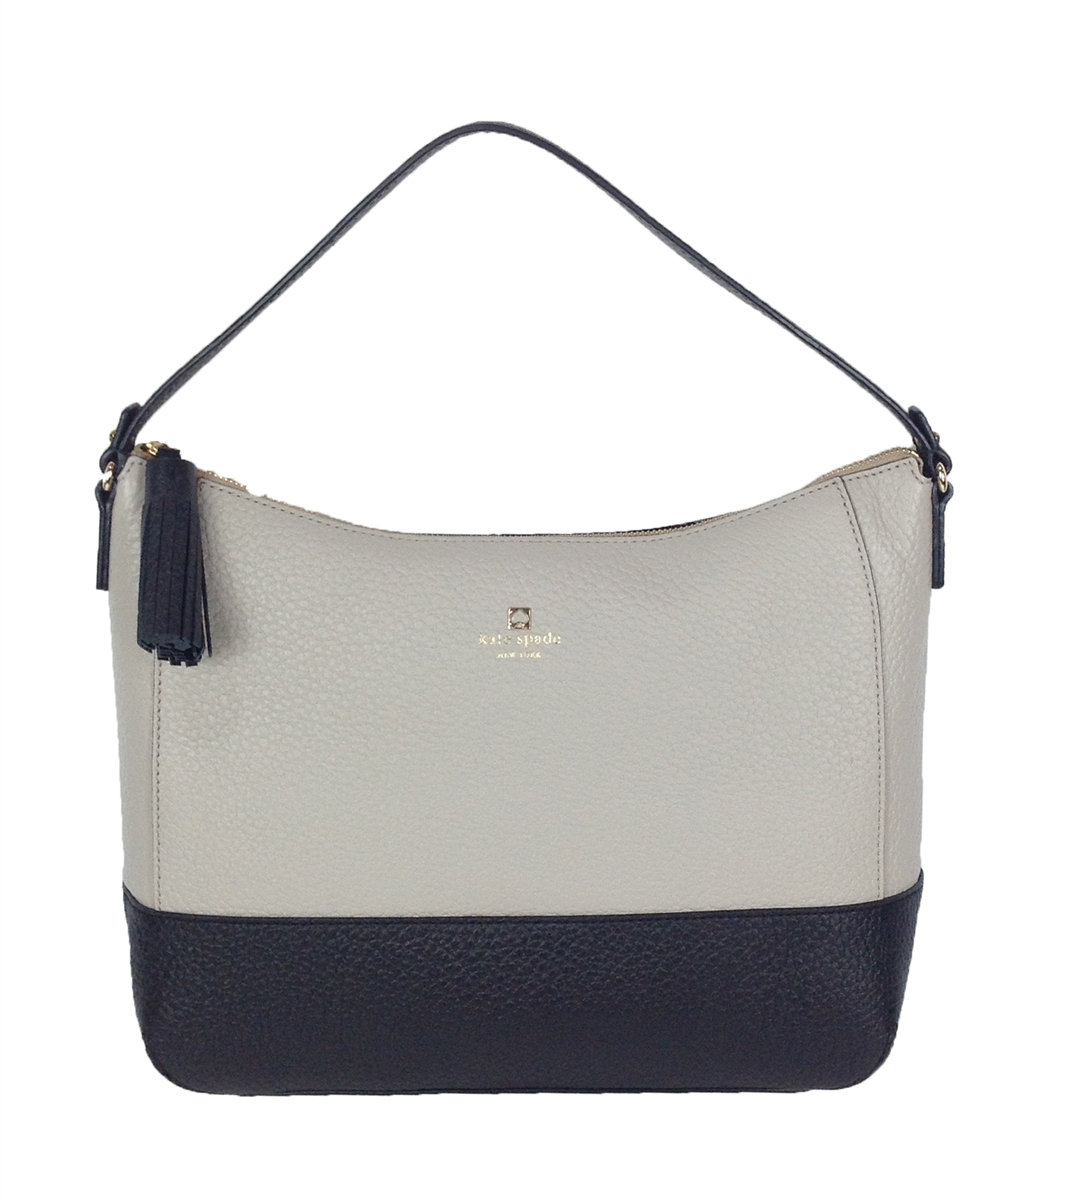 Kate Spade Southport Ave Cathy Leather Hobo Bag 0310d7c40737c